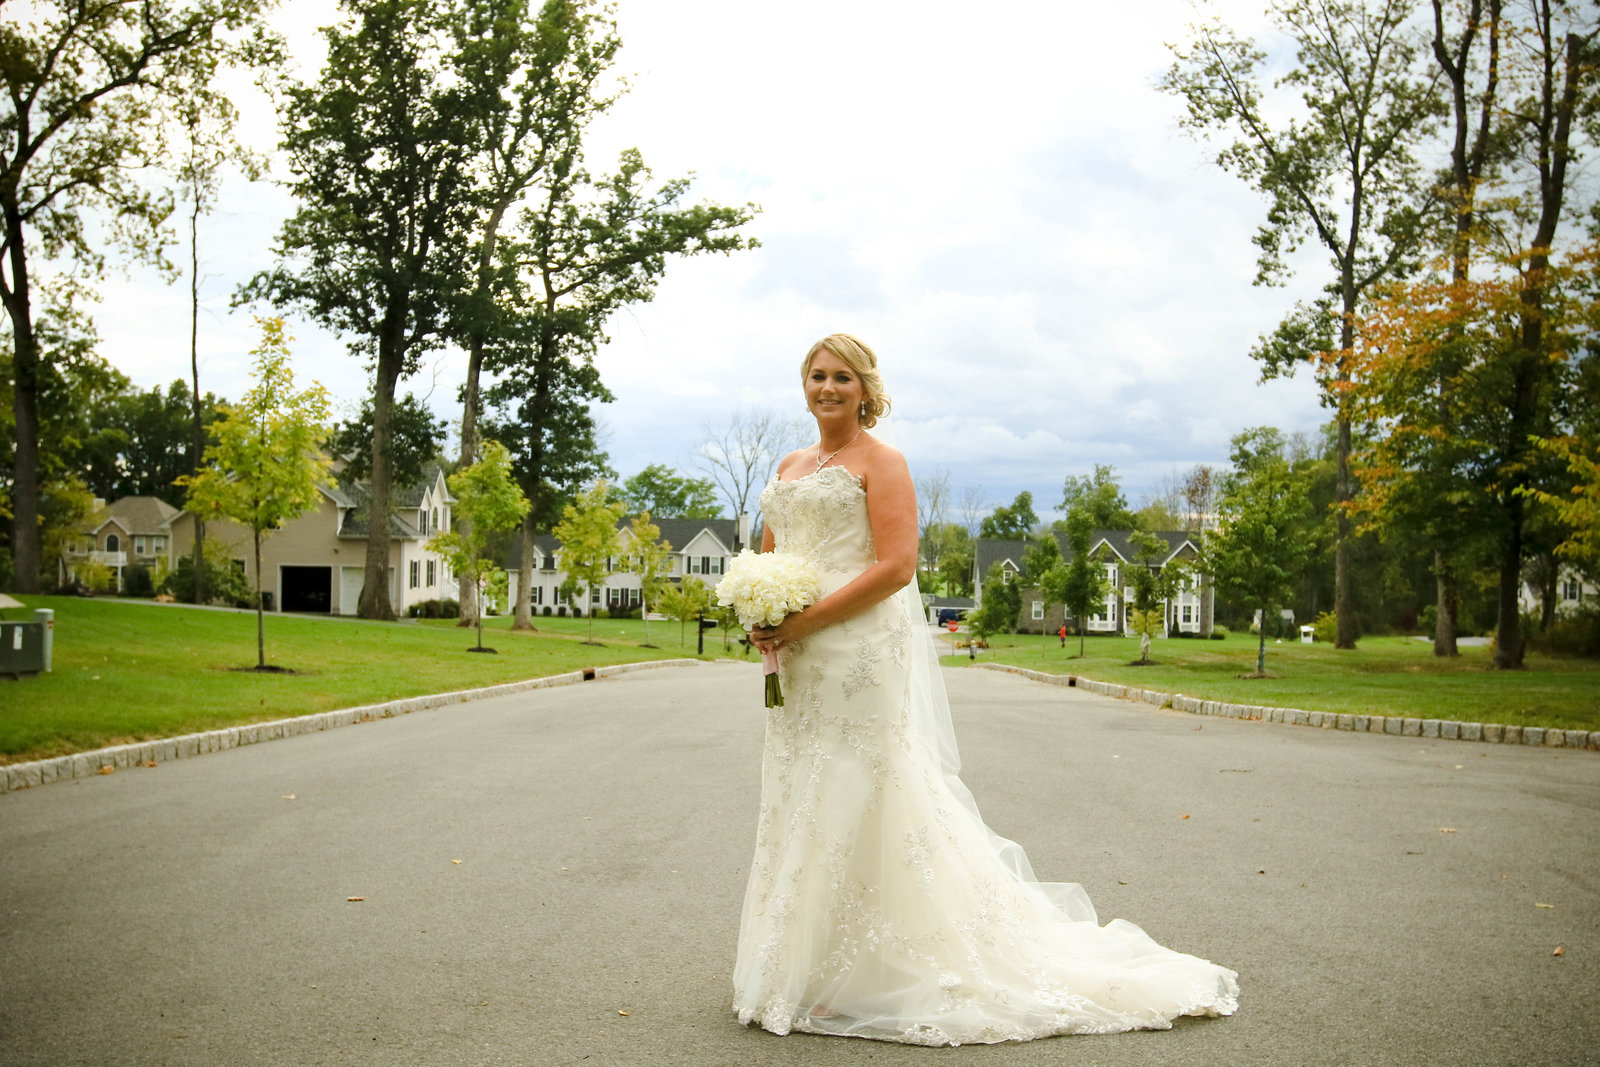 cove-castle-wedding-photos-eveliophoto-95